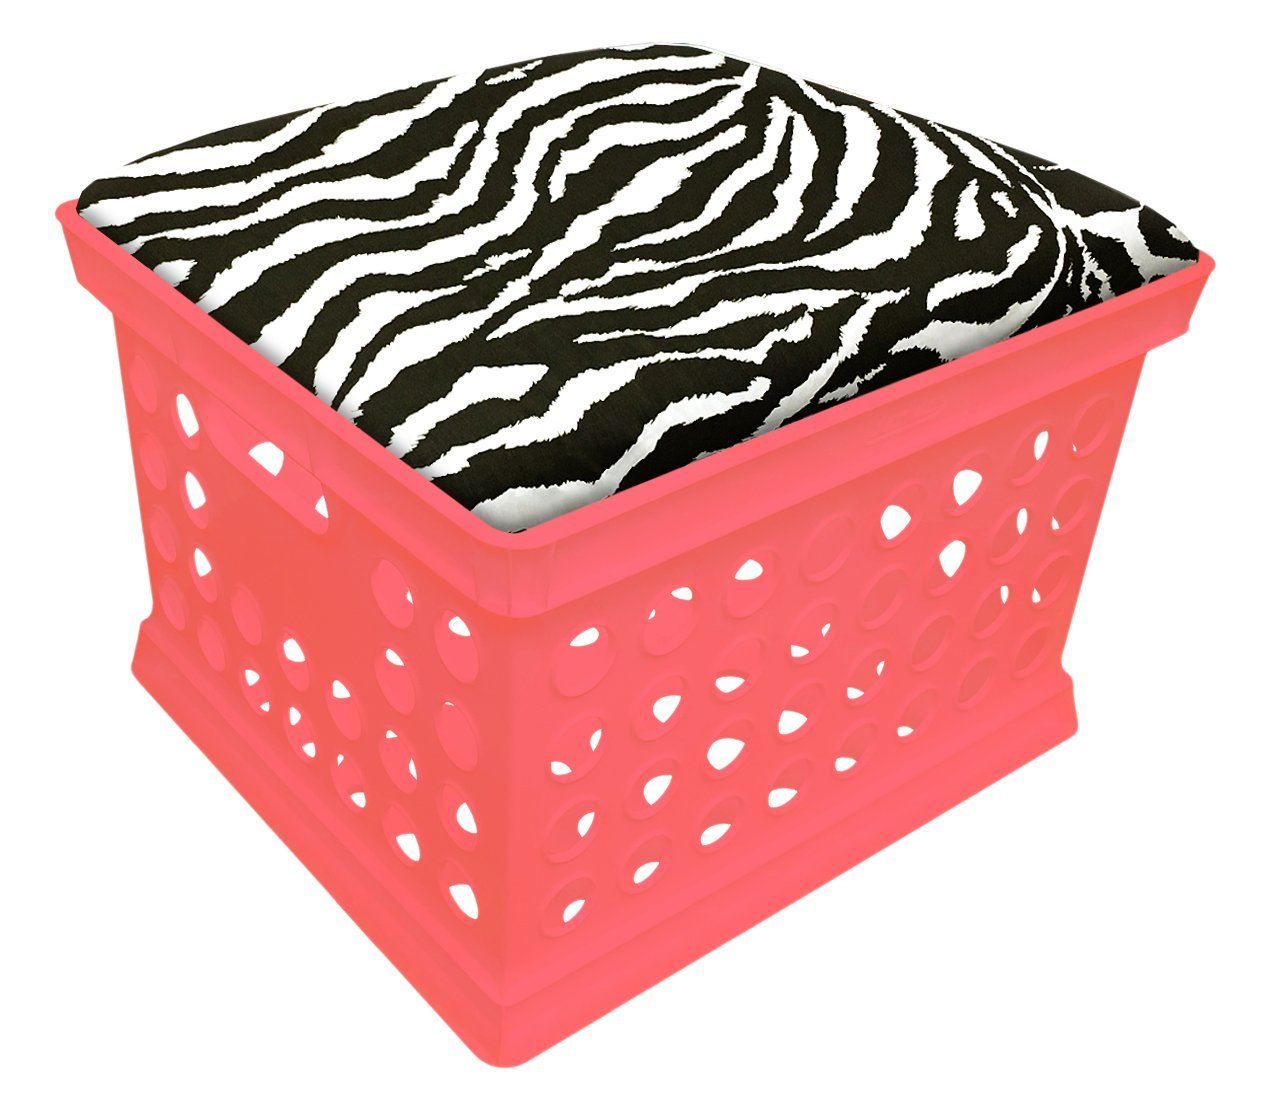 Pink Utility Crate Storage Container Ottoman Bench Stool for Office/Home/School/Preschools with Your Choice of Seat Cushion Theme and a Free Flashlight! (Black & White Zebra)